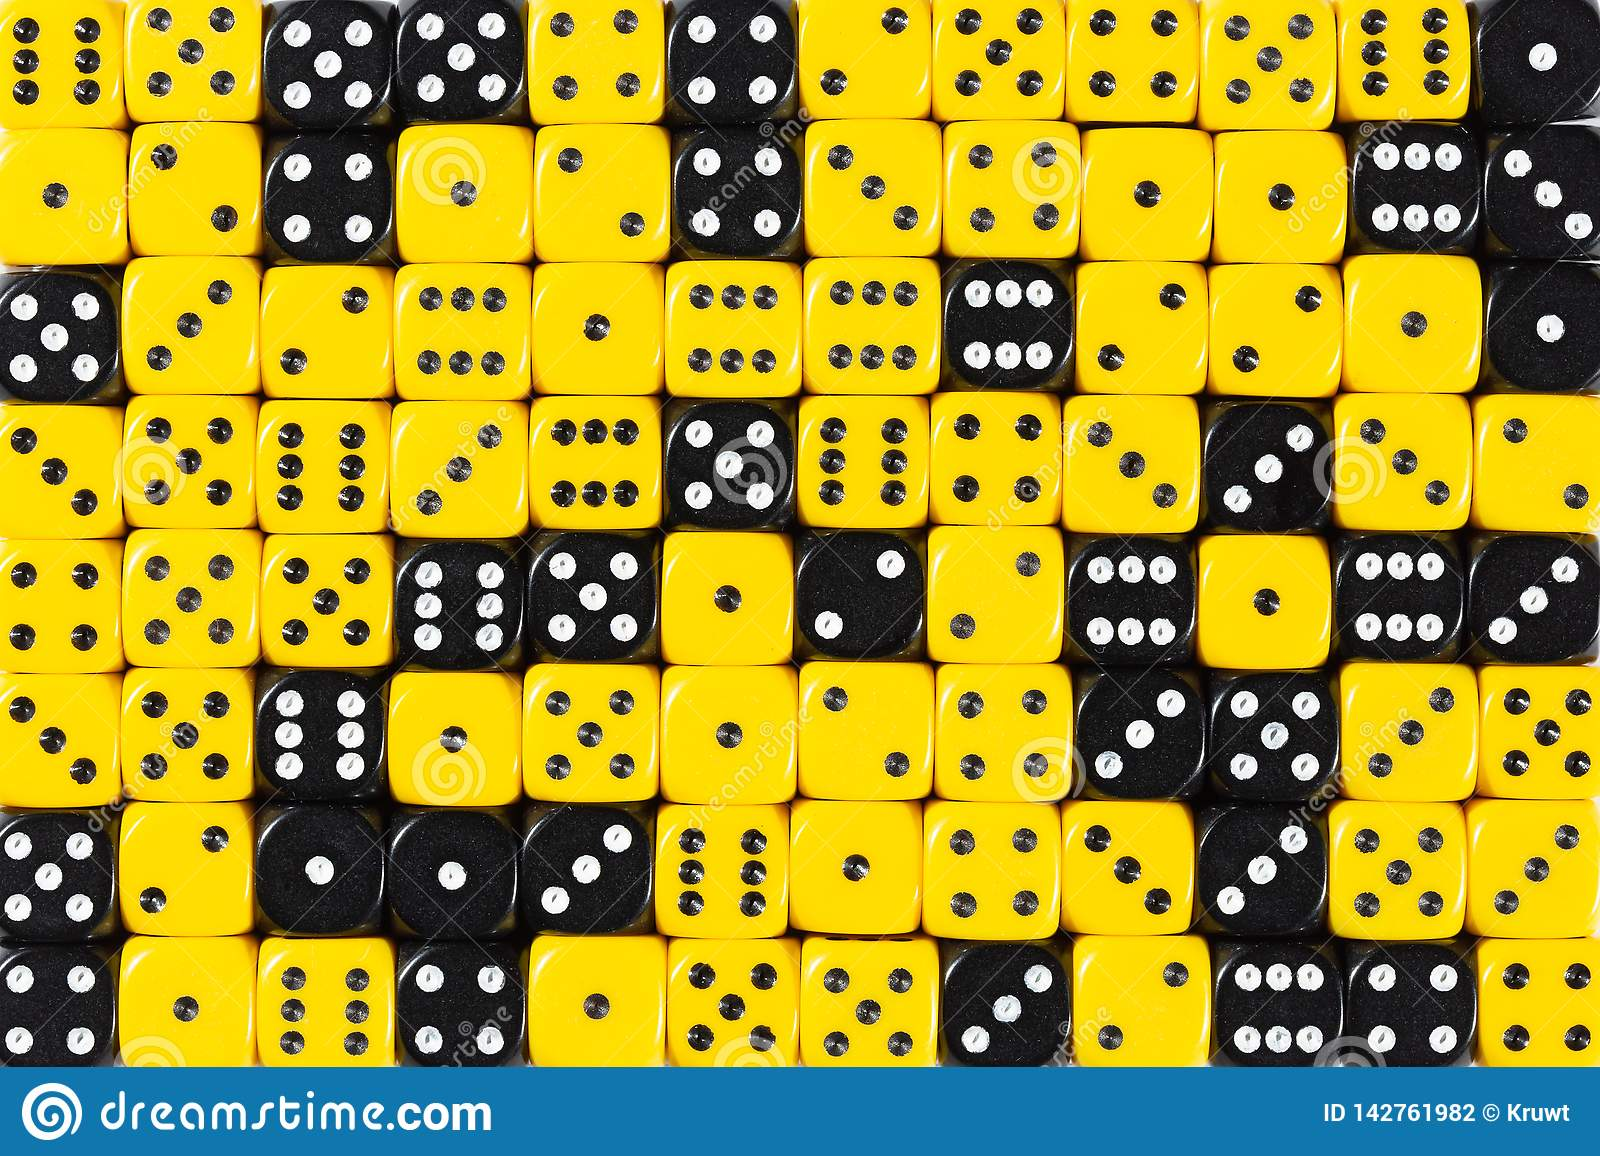 Background patteren of random ordered yellow and black dices